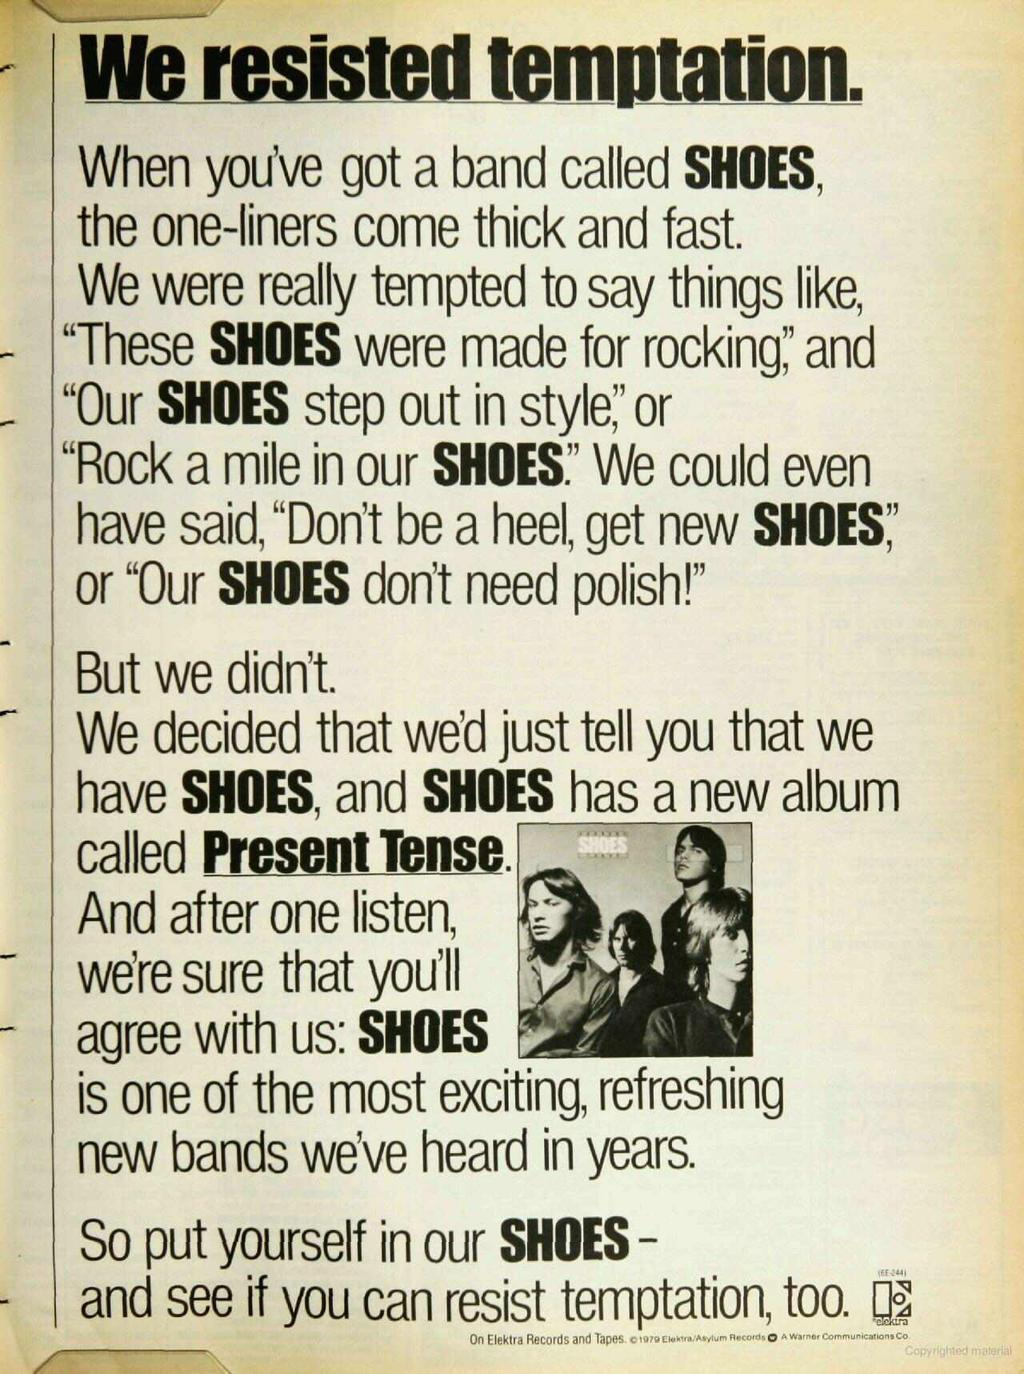 we resisted temptation. When you've got a band called SHOES, the one -liners come thick and fast.